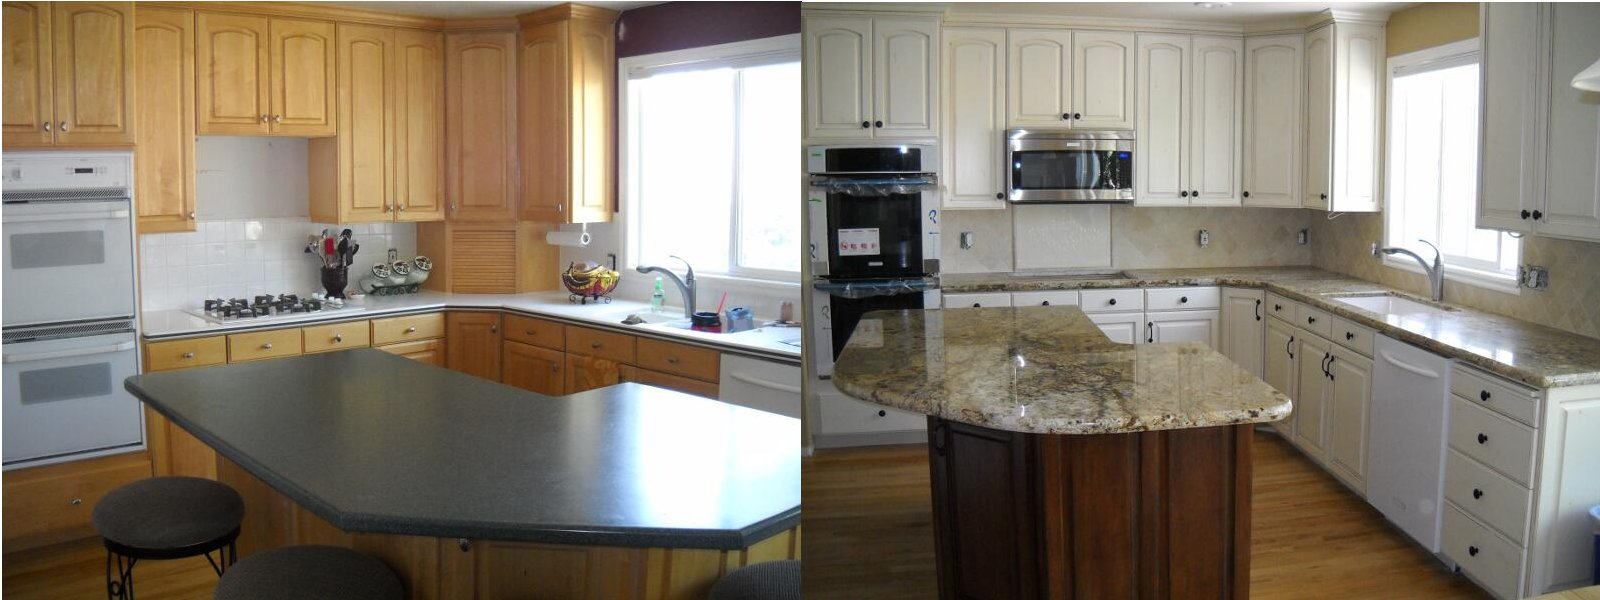 Refurbish Kitchen Cabinets Similiar Refurbished Kitchen Cabinets Before And After Keywords